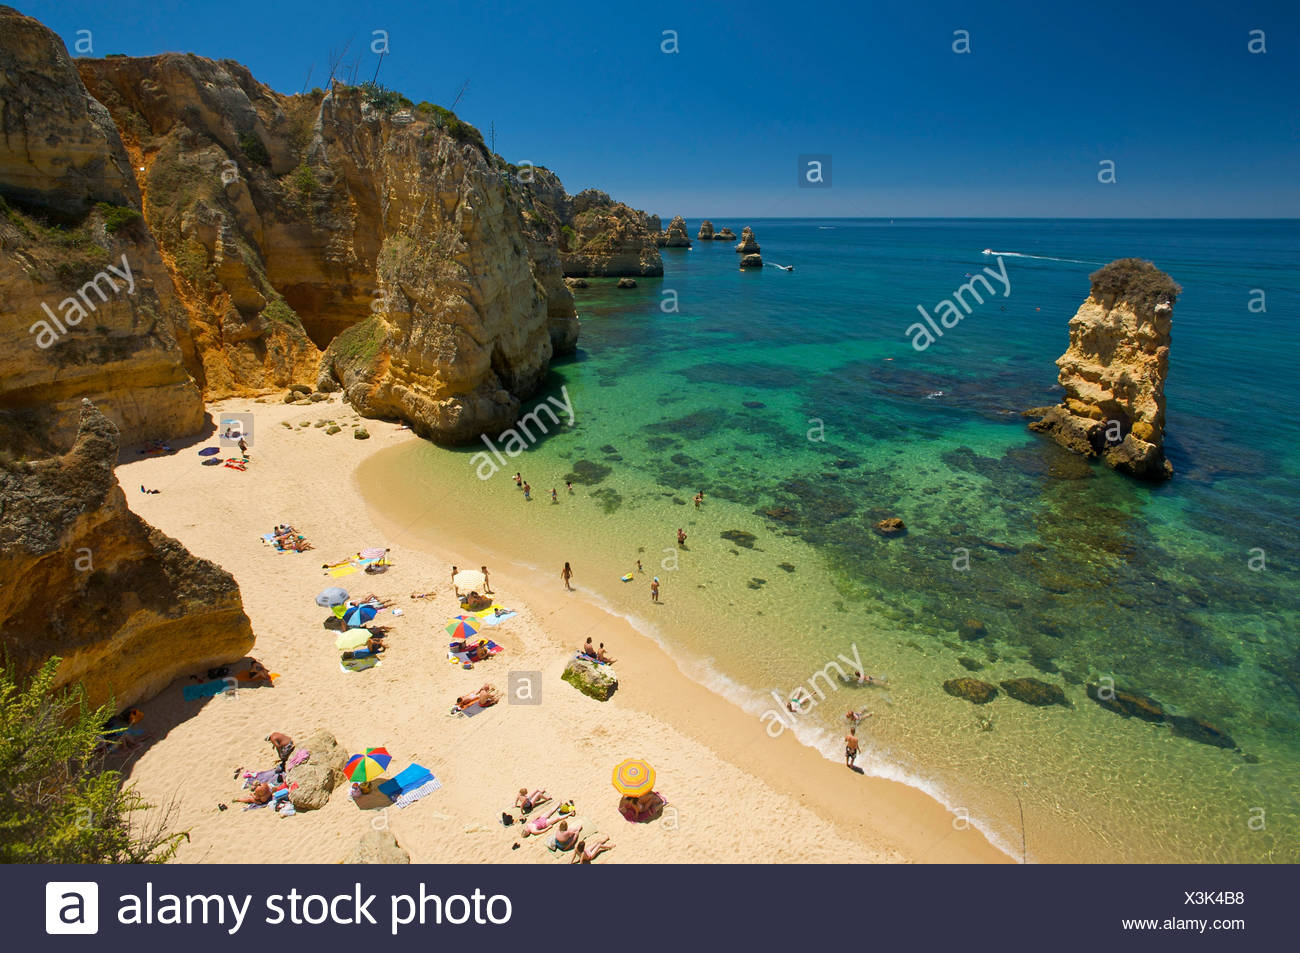 Praia Dona Ana near Lagos, Algarve, Portugal, Europe - Stock Image